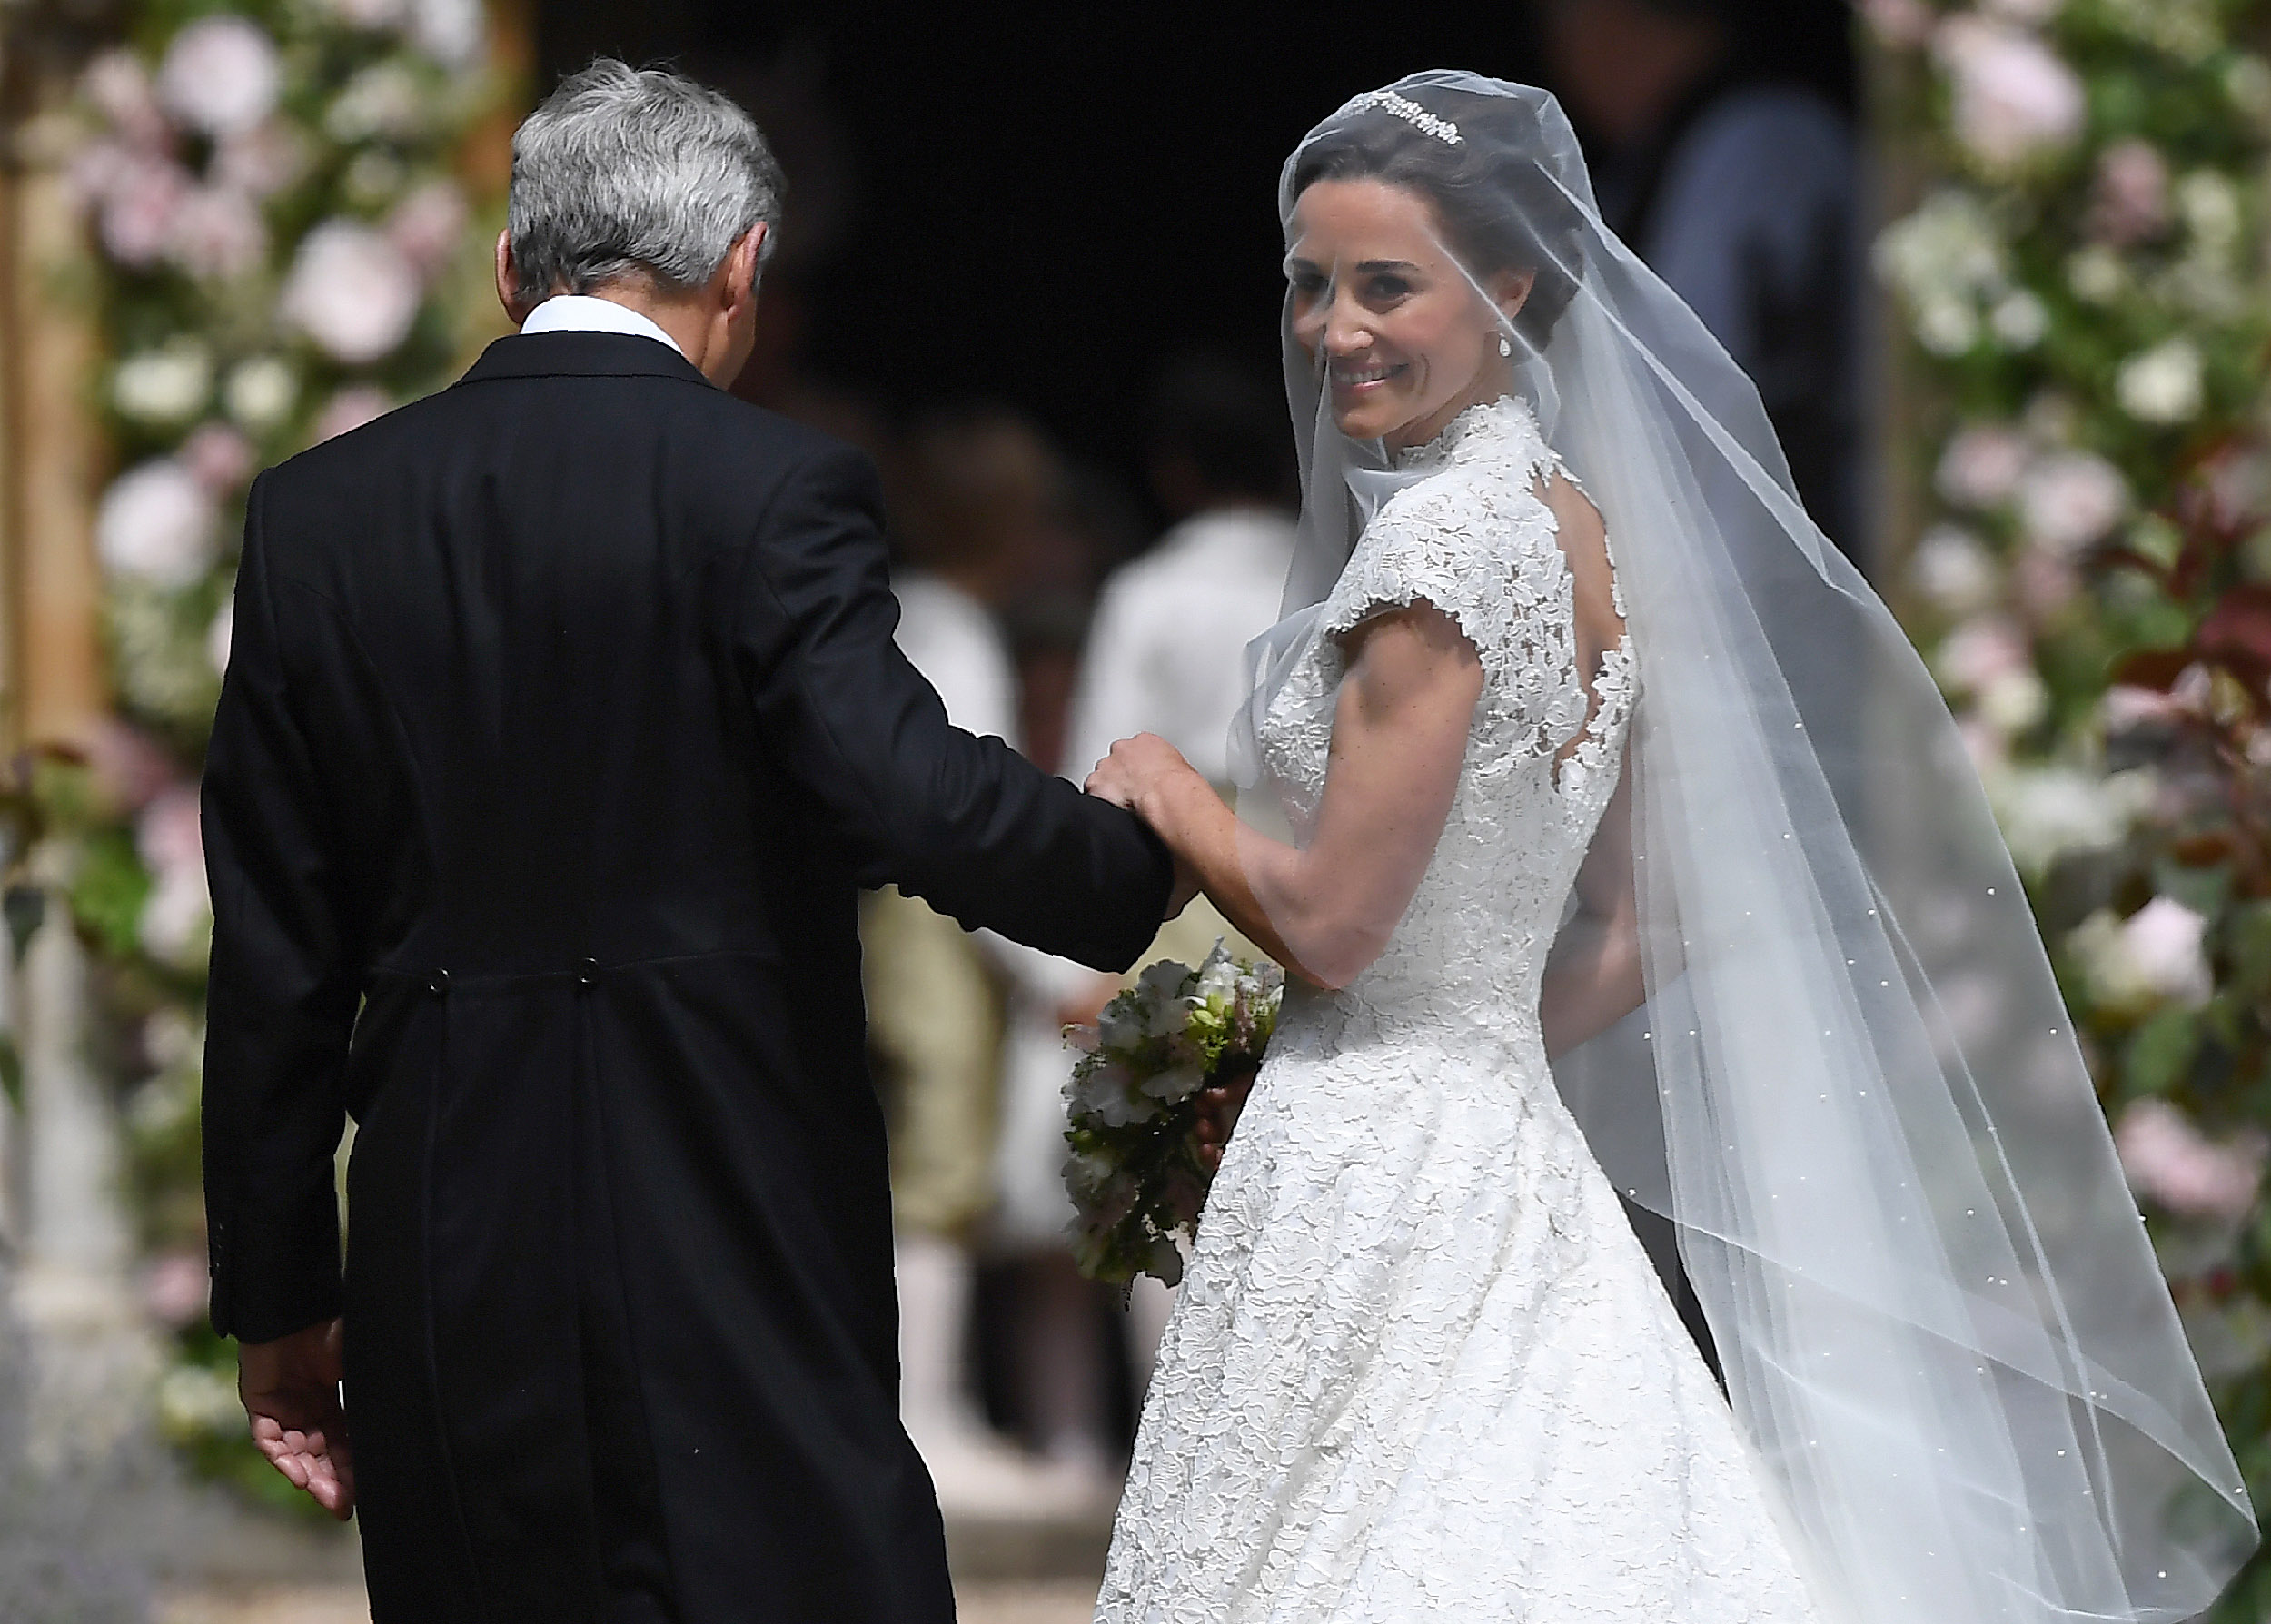 pippa-middleton-wedding-photos-1